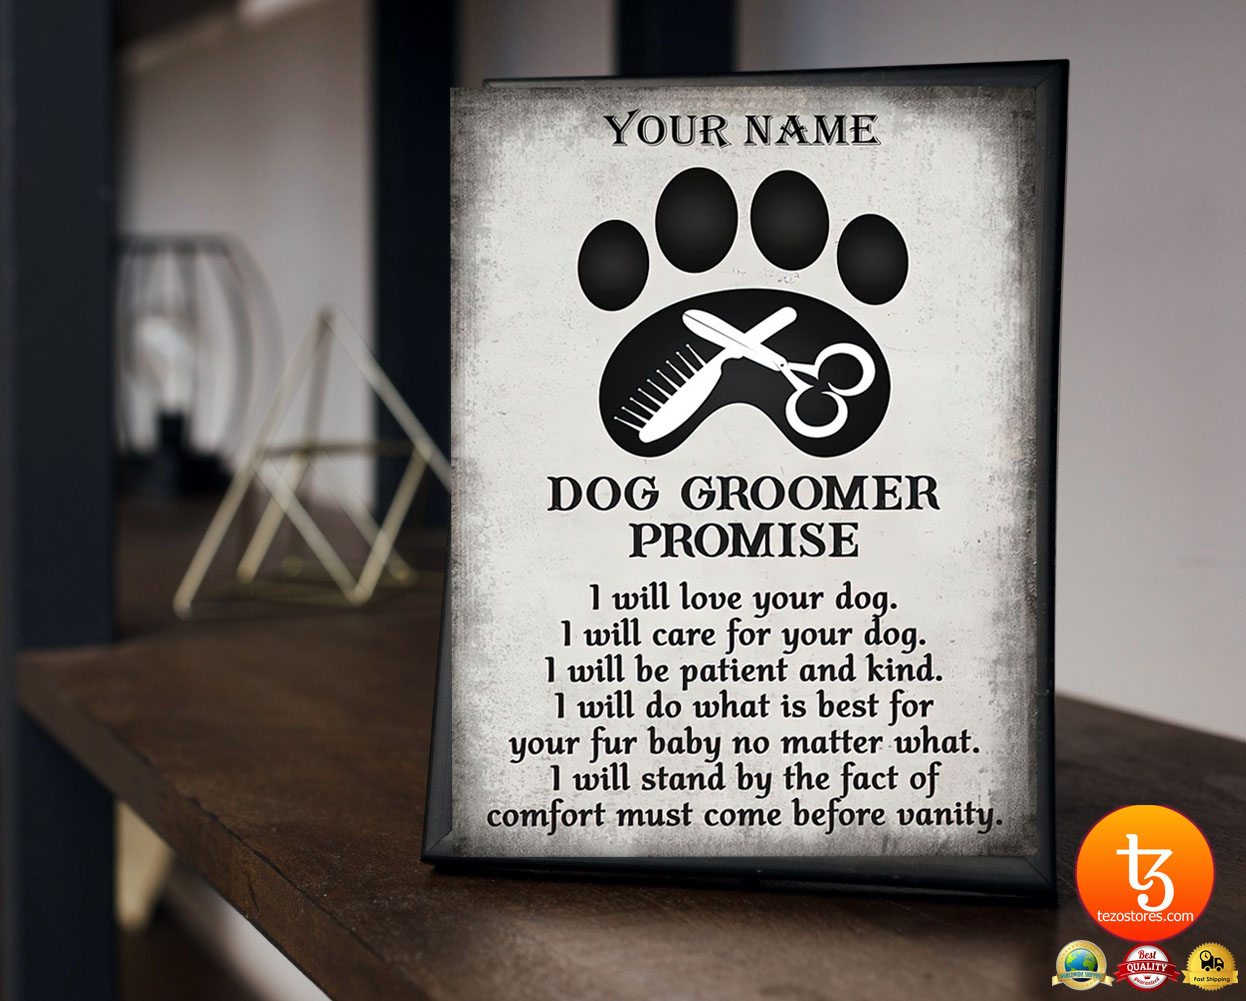 Dog groomer promise I will love your dog I will care for your dog custom name poster 23